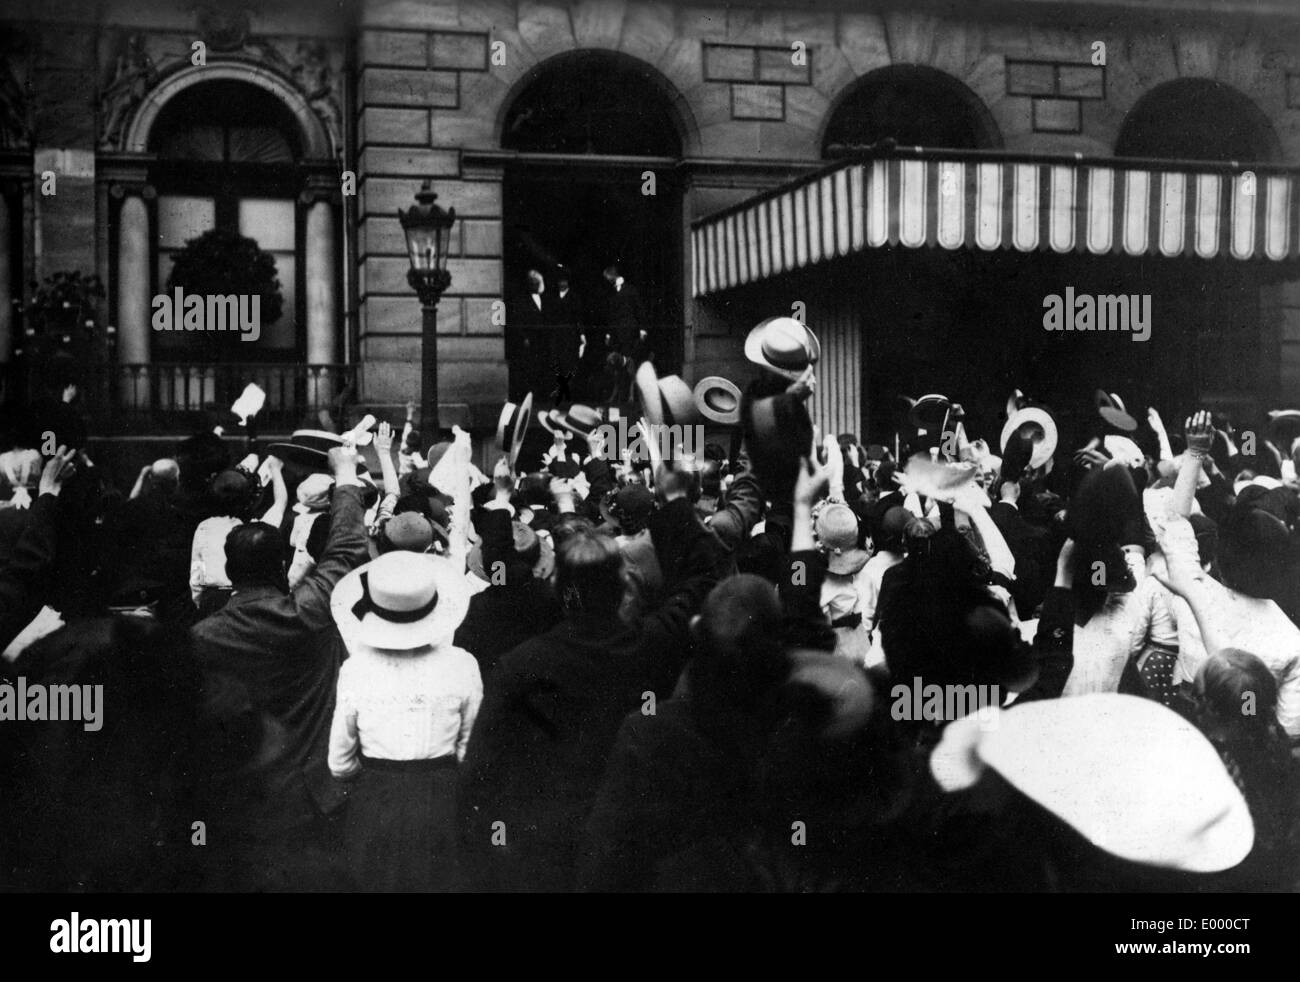 Proclamation of a victory message, 1914 - Stock Image